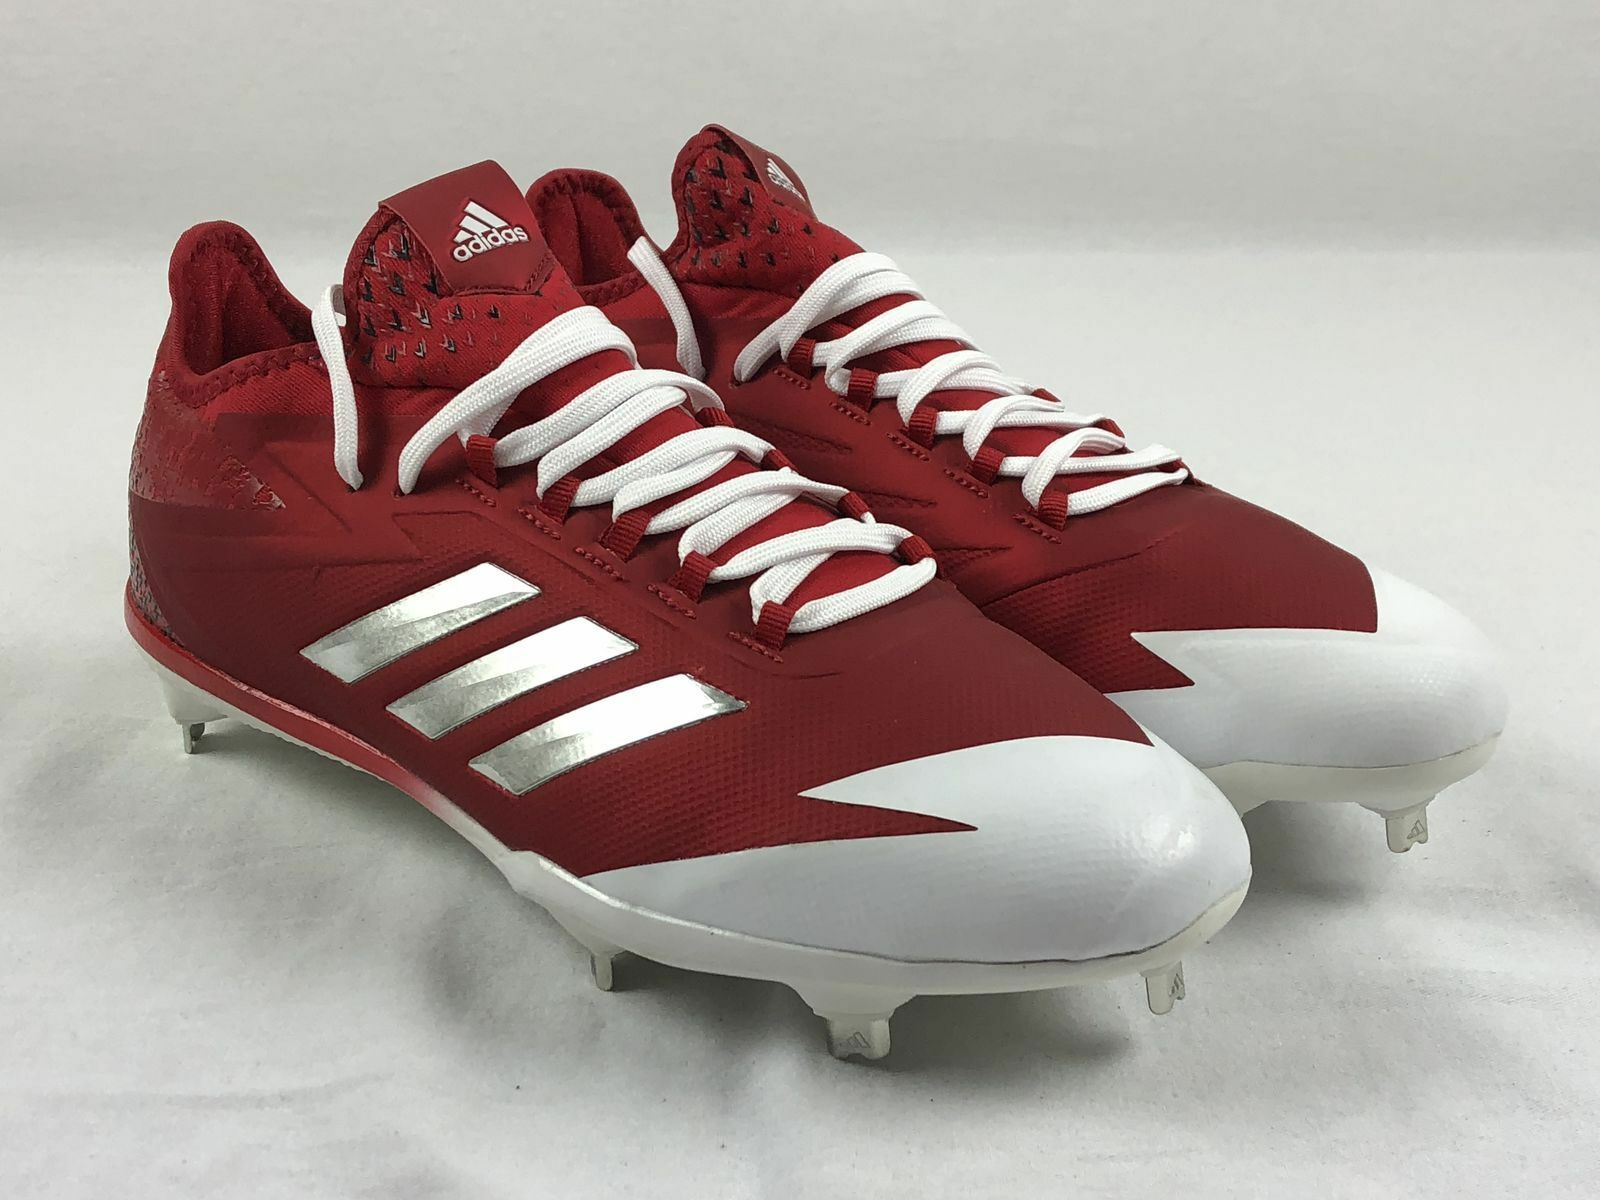 NEW adidas adizero Afterburner 4 - Red Cleats (Men's 12)